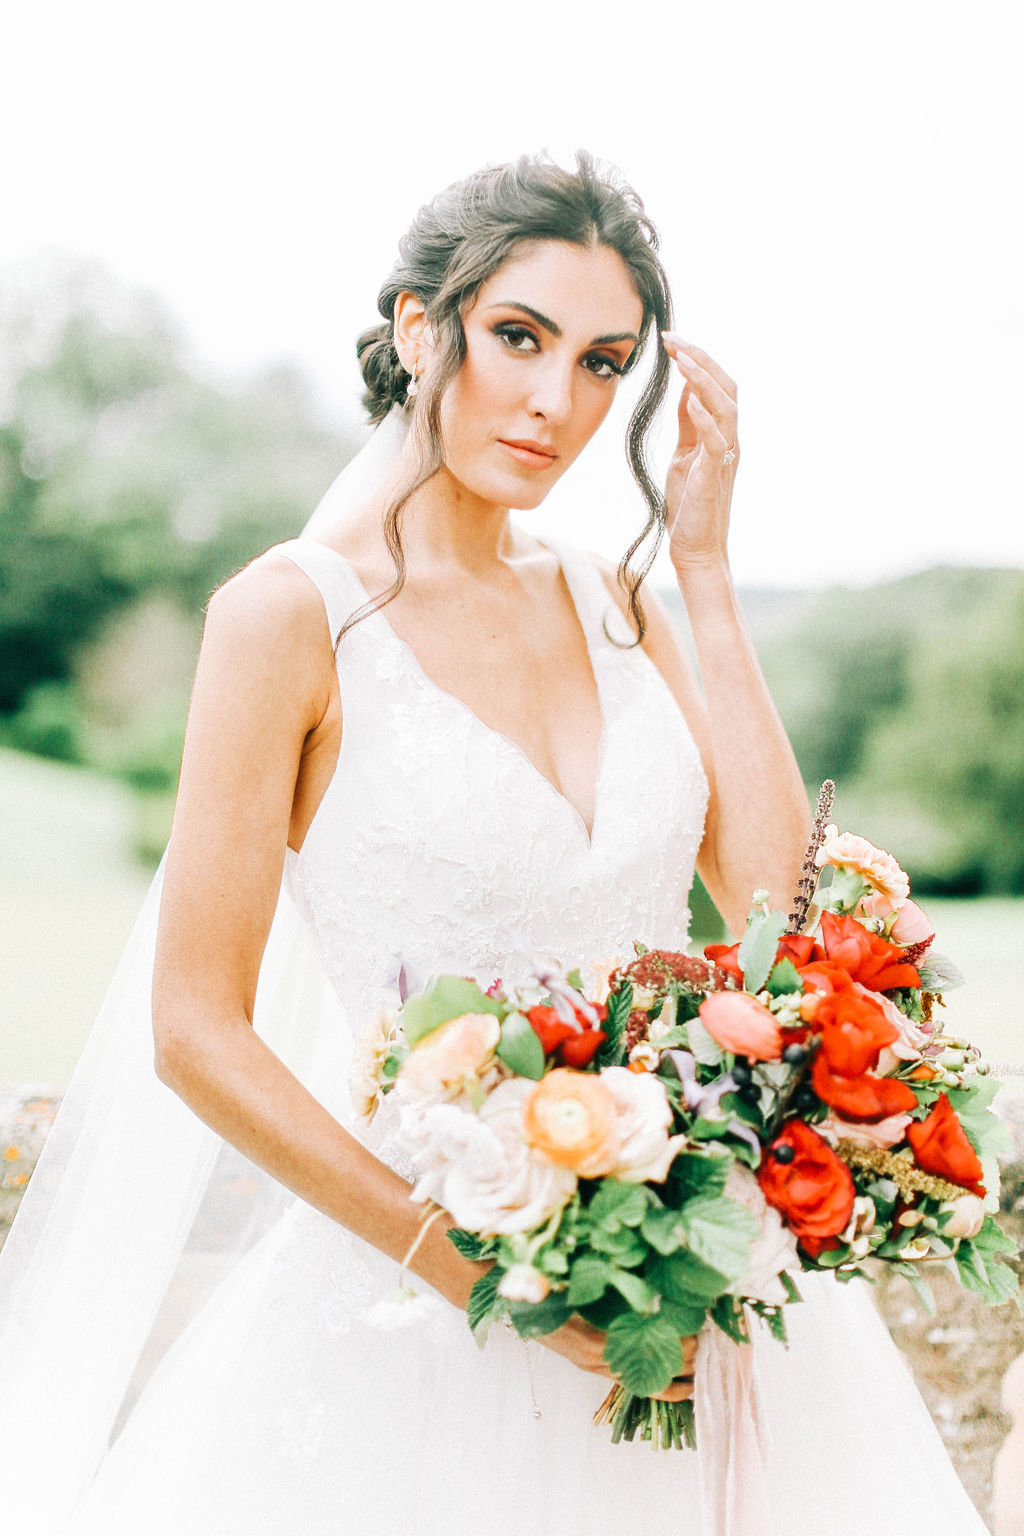 V Neck Wedding Gown, Elegant Bridal Updo and Red Bridal Bouquet